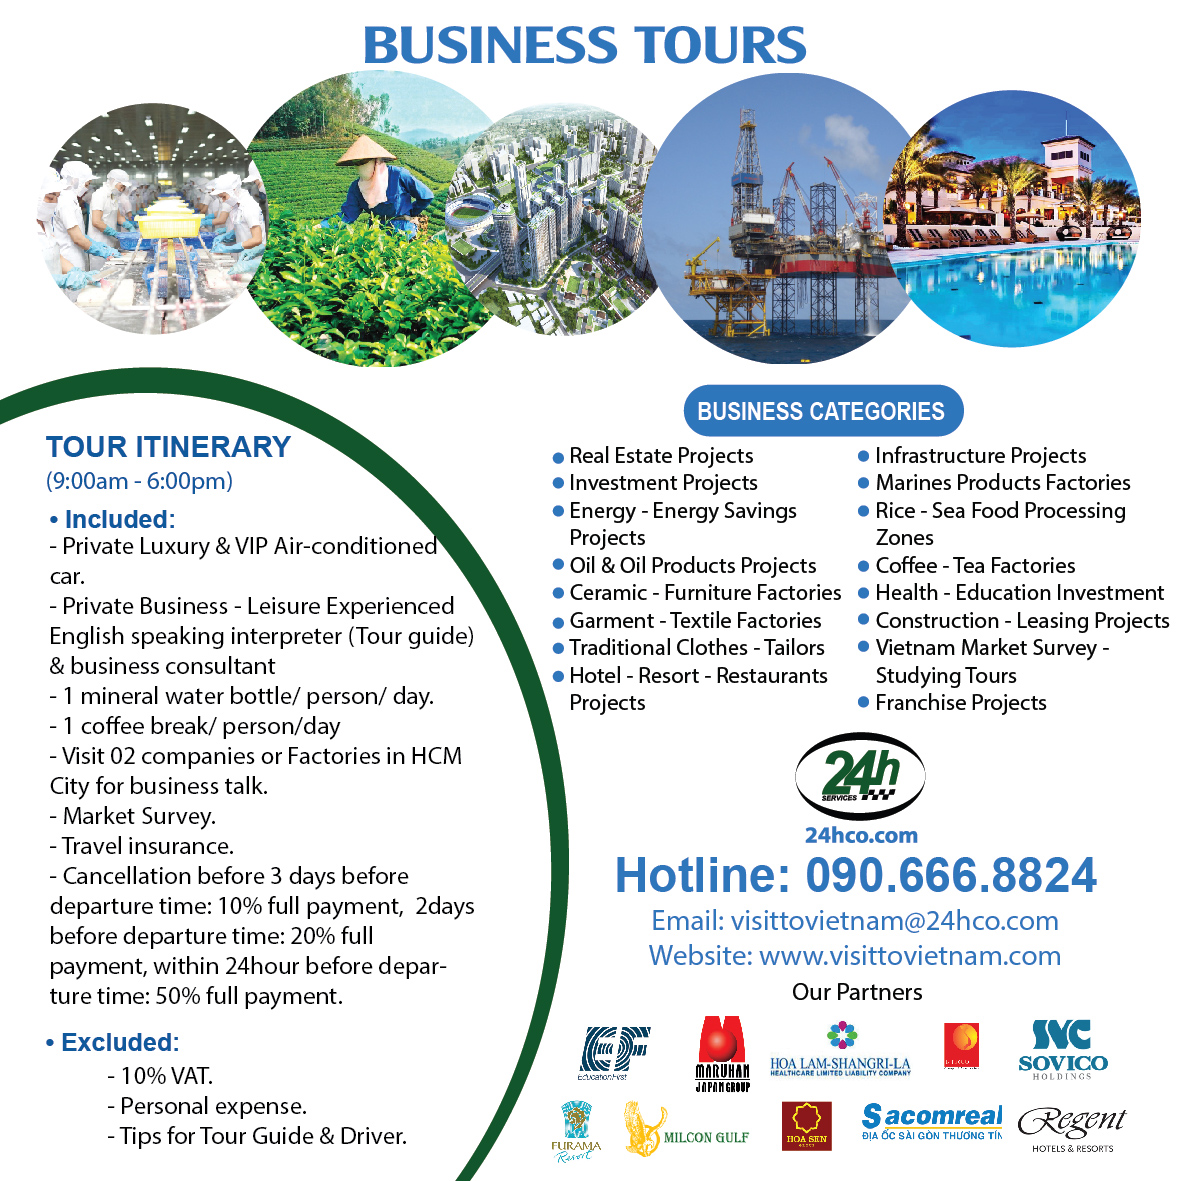 Business Tours